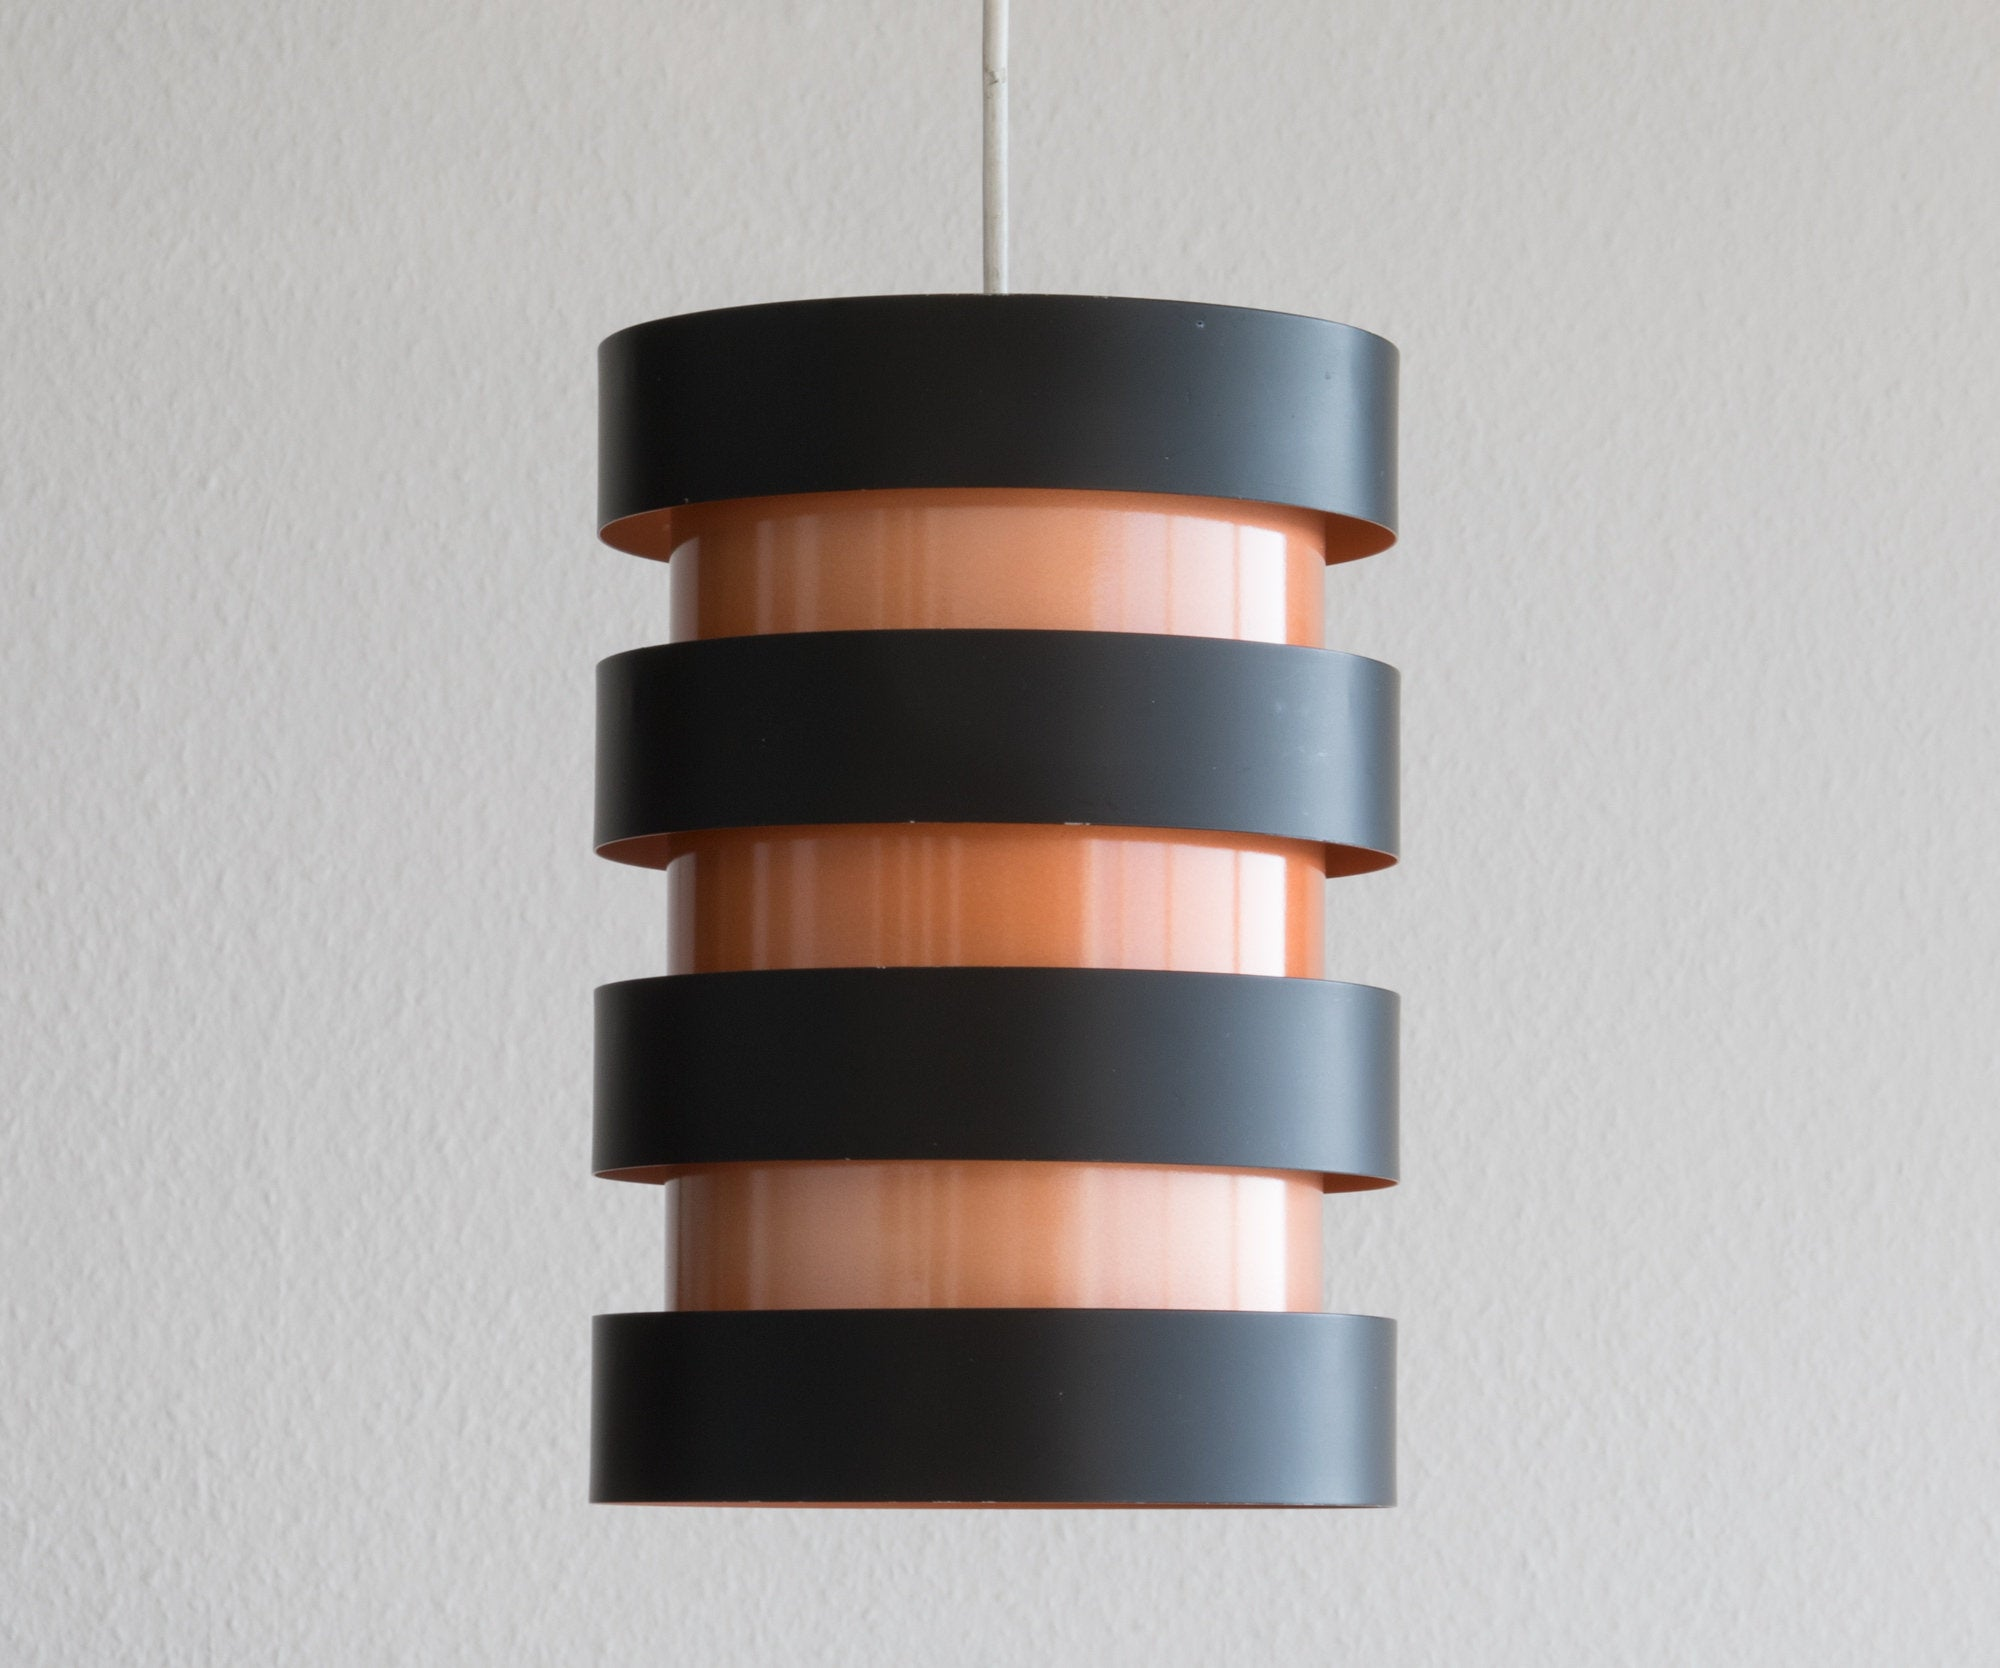 JO HAMMERBORG Fog & Mørup EIFEL Copper and Black Pendant Light - Mollaris.com